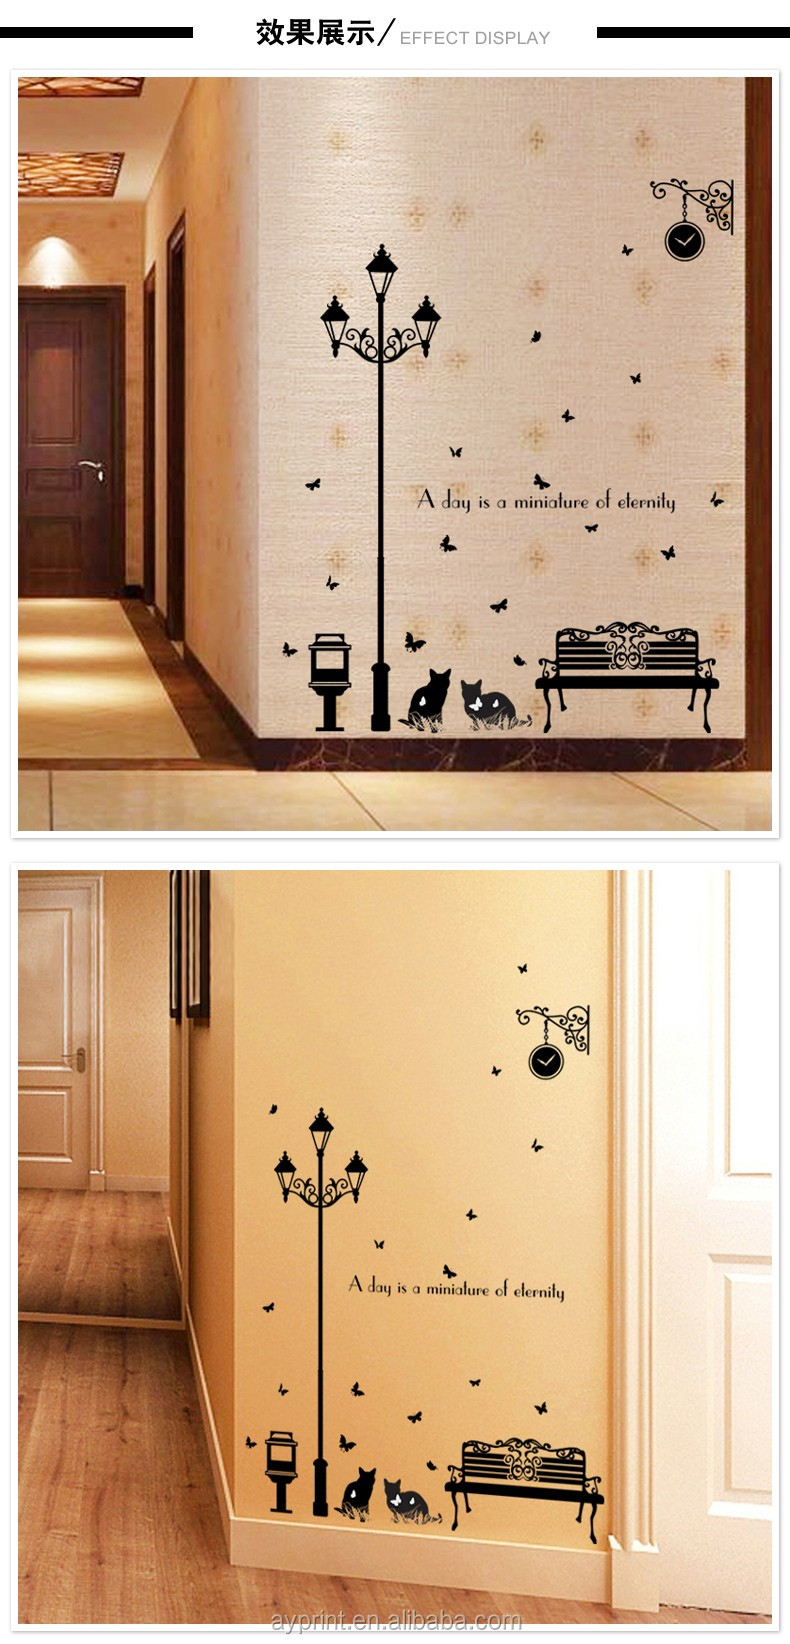 Sk9180 decor wall sticker park bench street lamp cat creativity sk9180 decor wall sticker park bench street lamp cat creativity diy home bedroom tv decorative wall amipublicfo Gallery